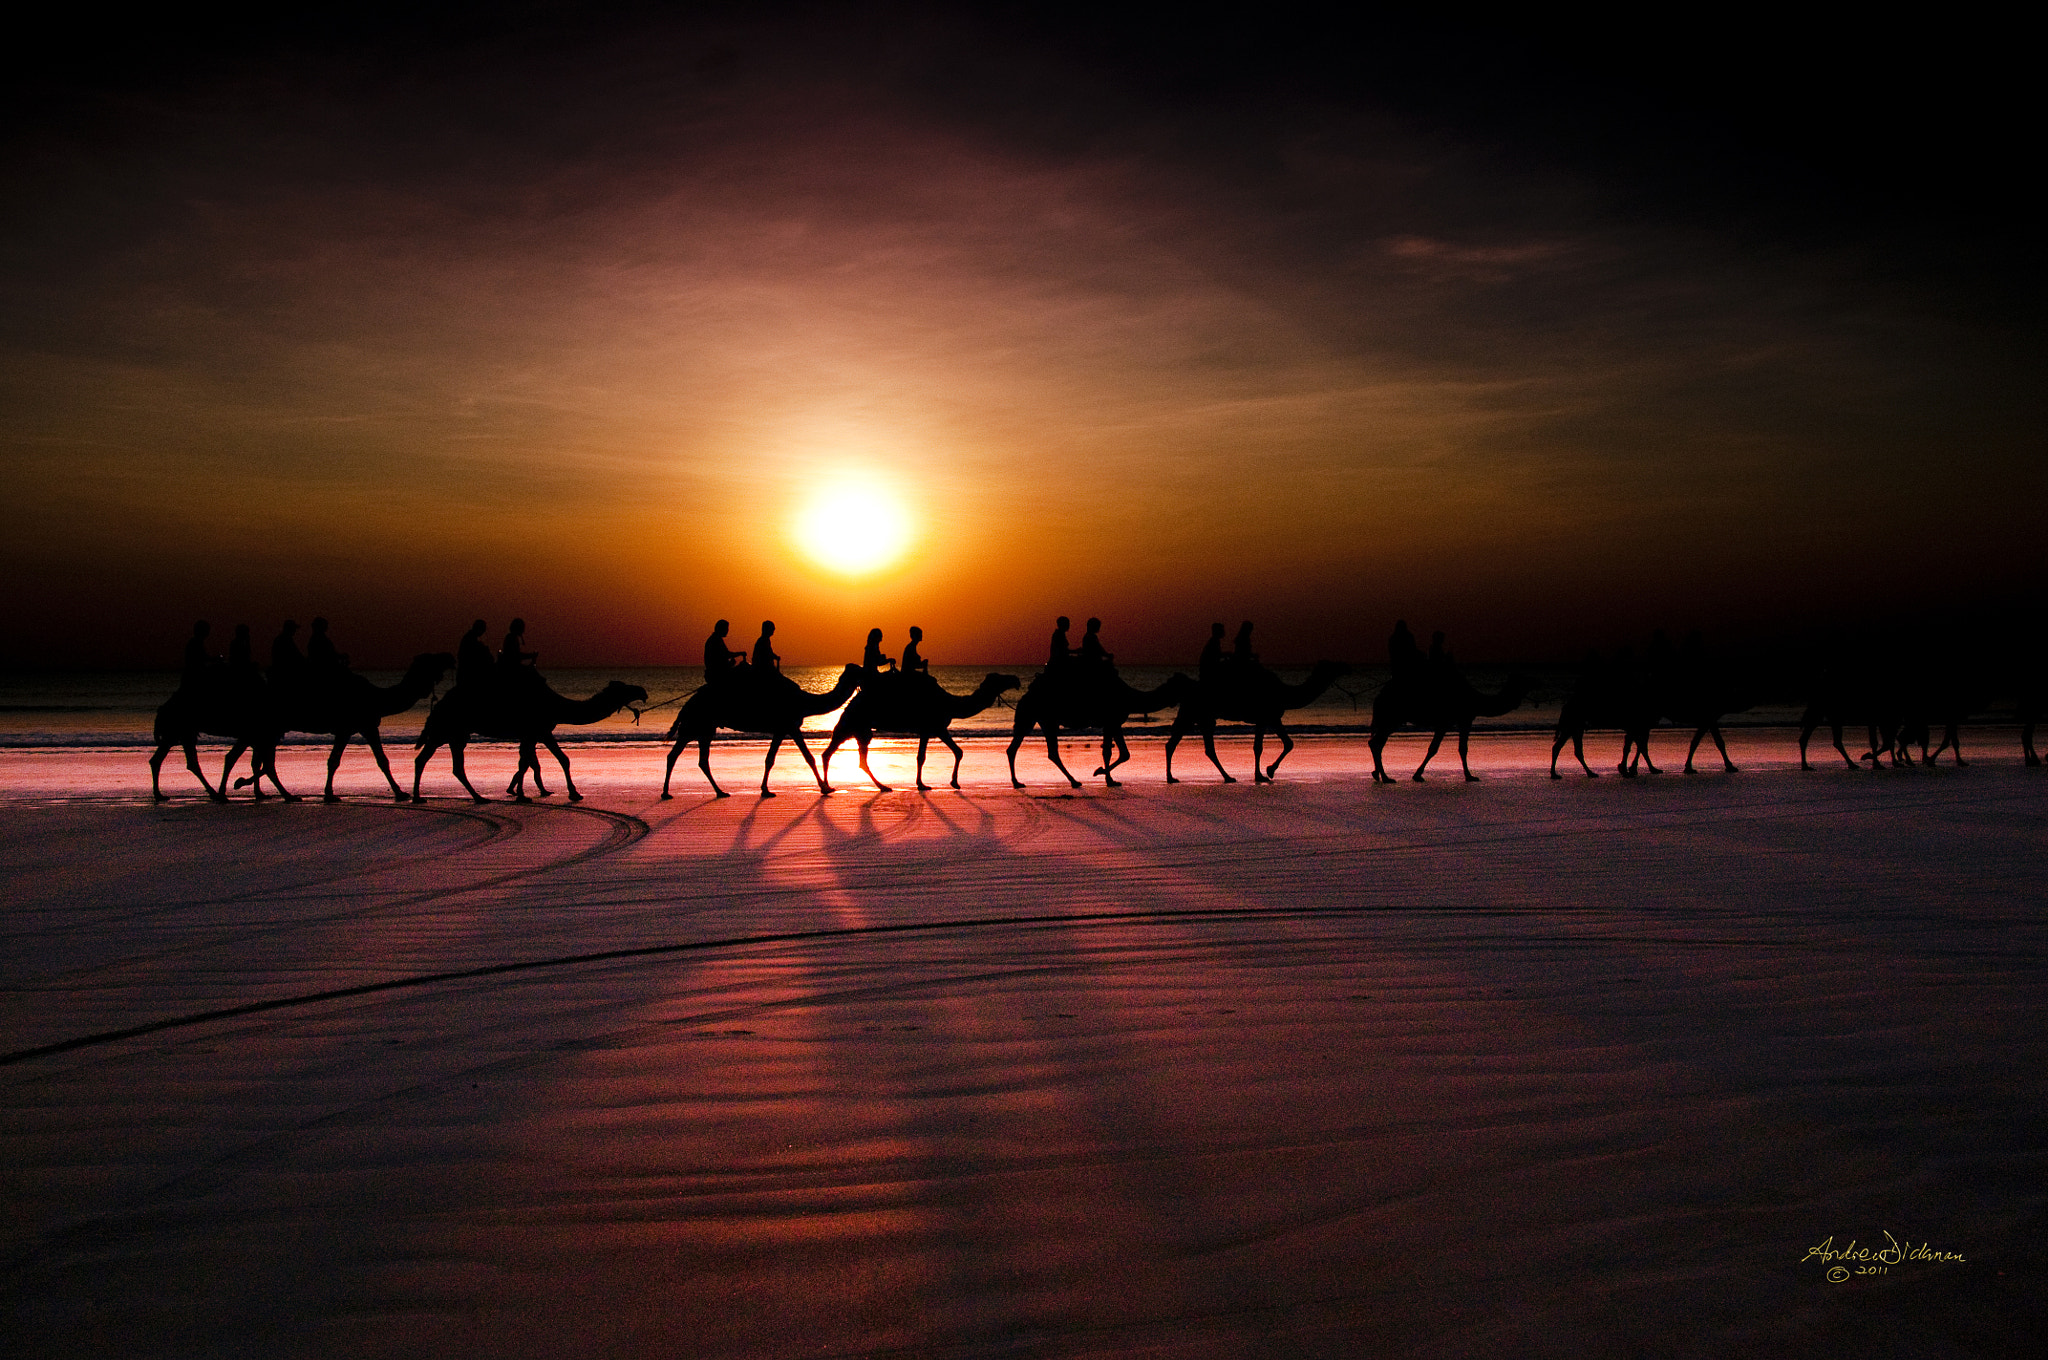 Photograph Shadow camels by Andrew Dickman on 500px